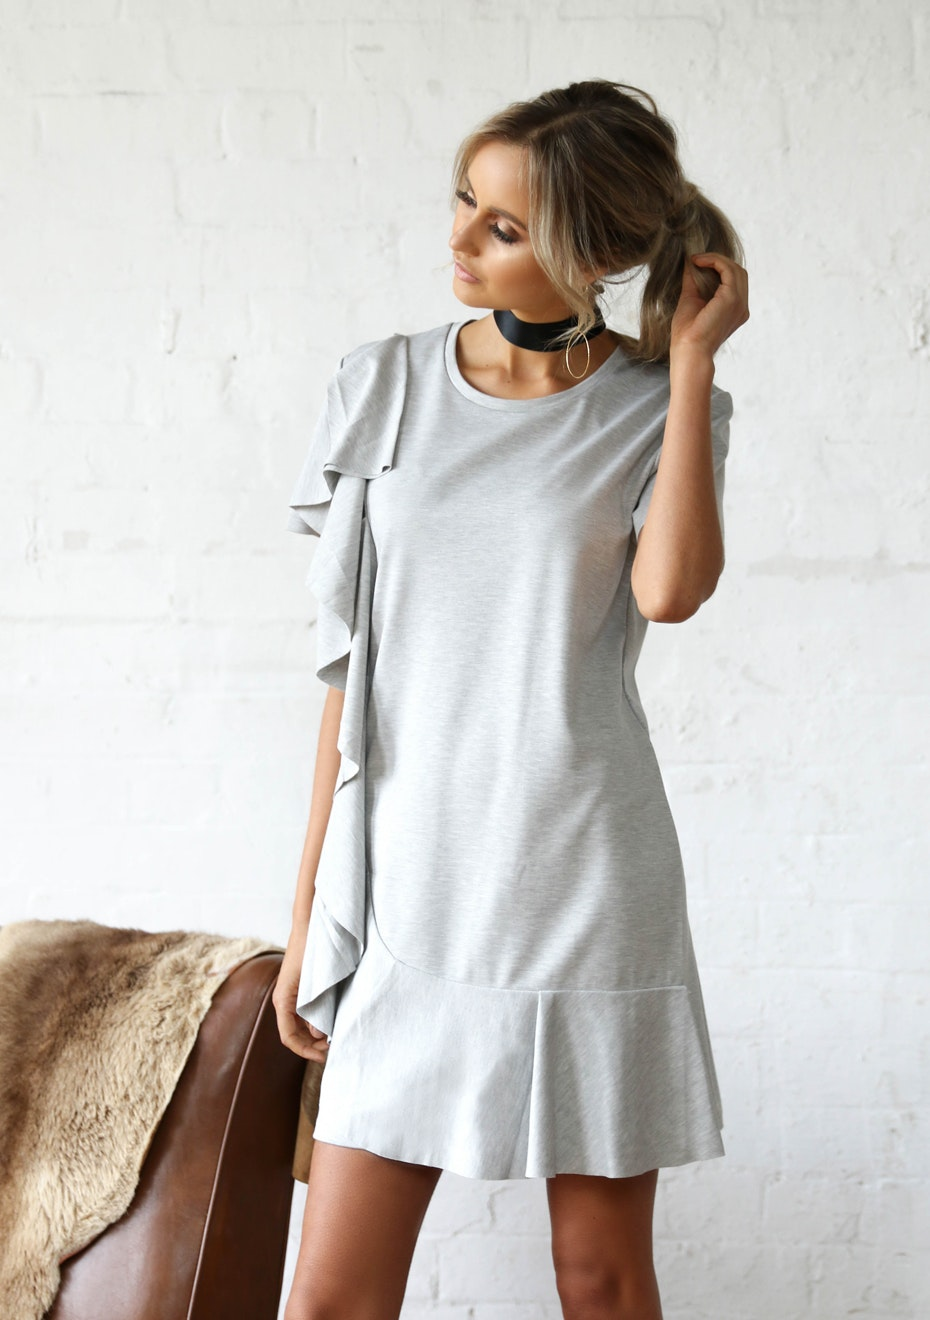 Madison - SLOW DANCE TEE DRESS - GREY